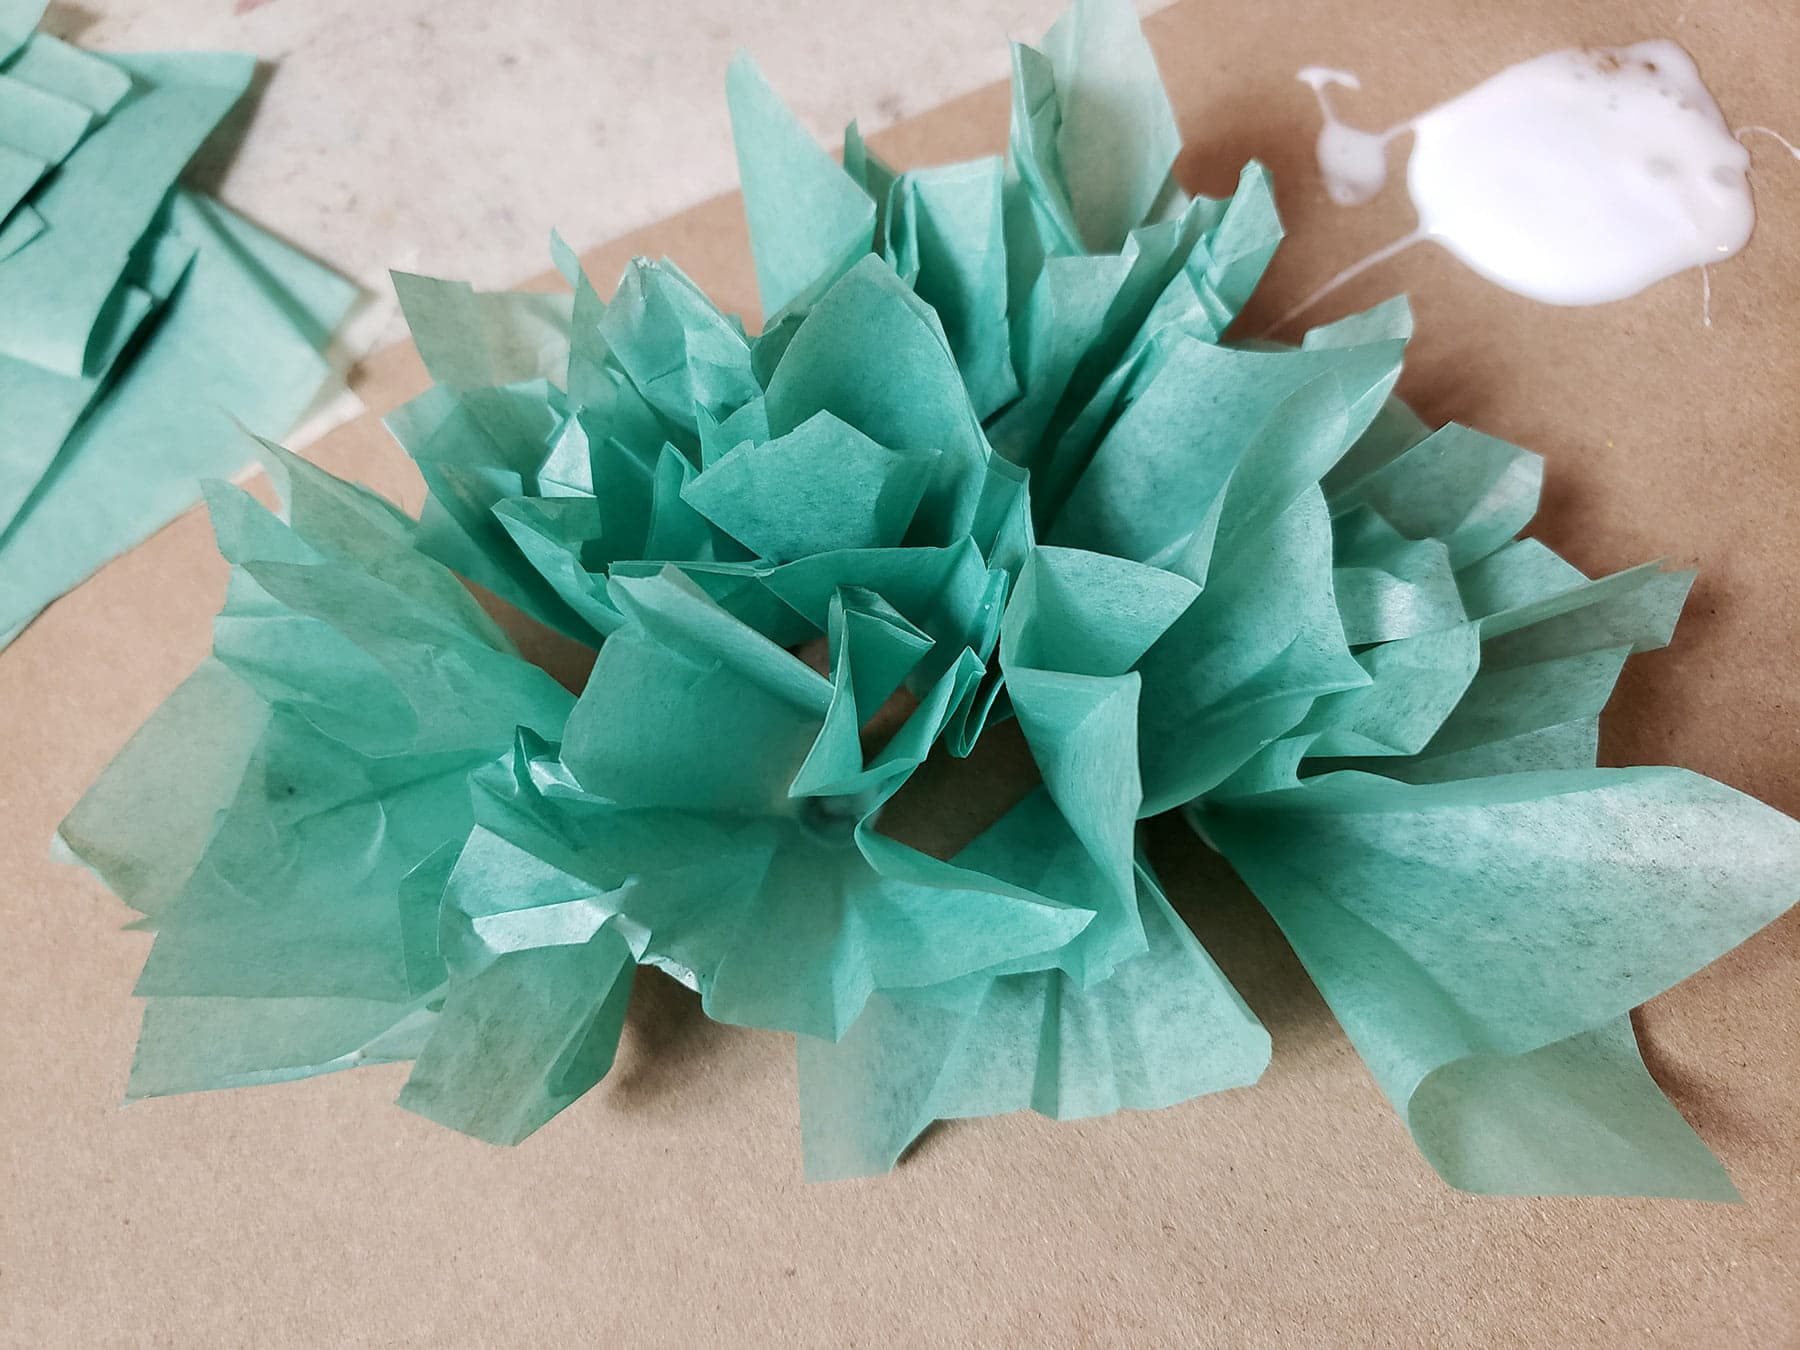 A group of light green tissue puffs on a brown paper background.